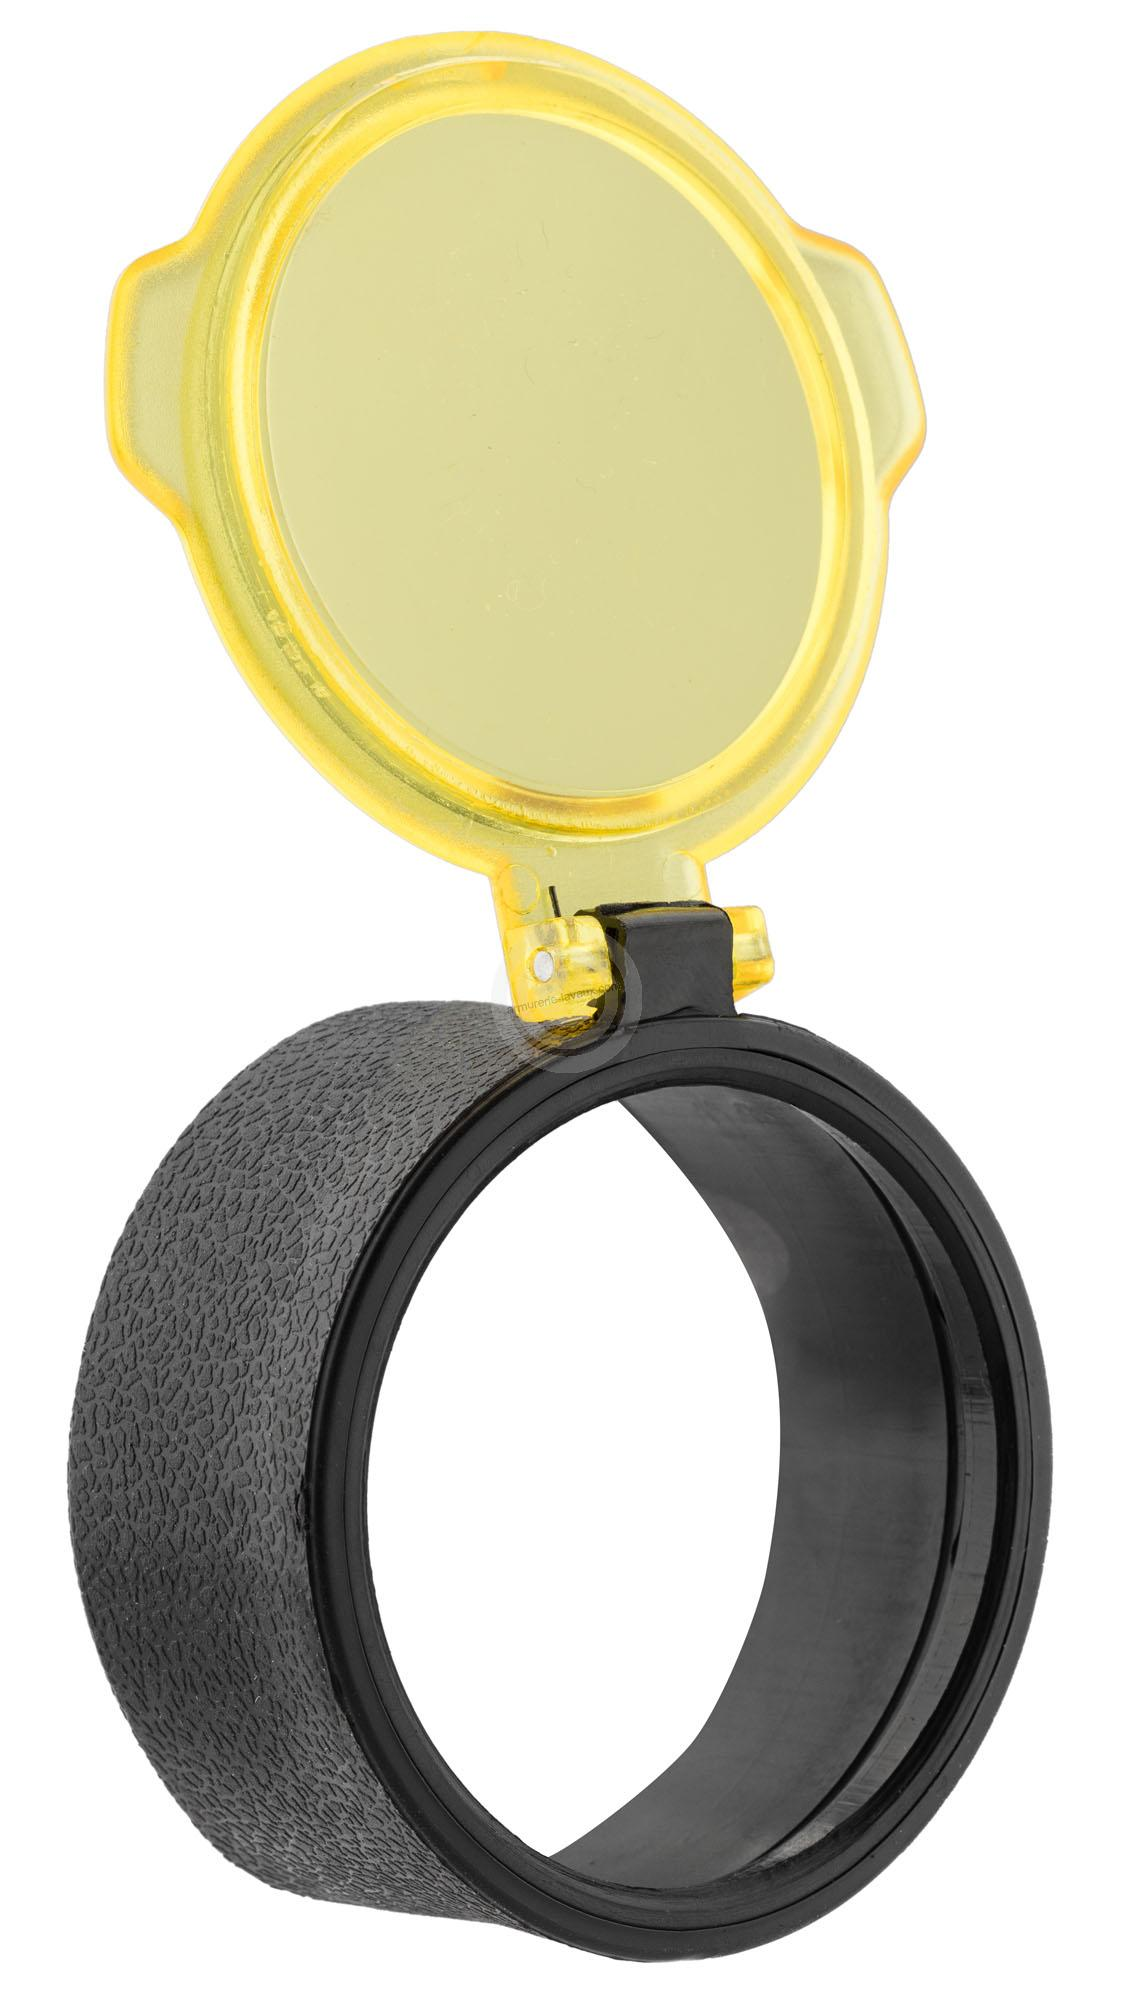 Protège oculaire KASTELBERG Taille 29 à 29,6 mm